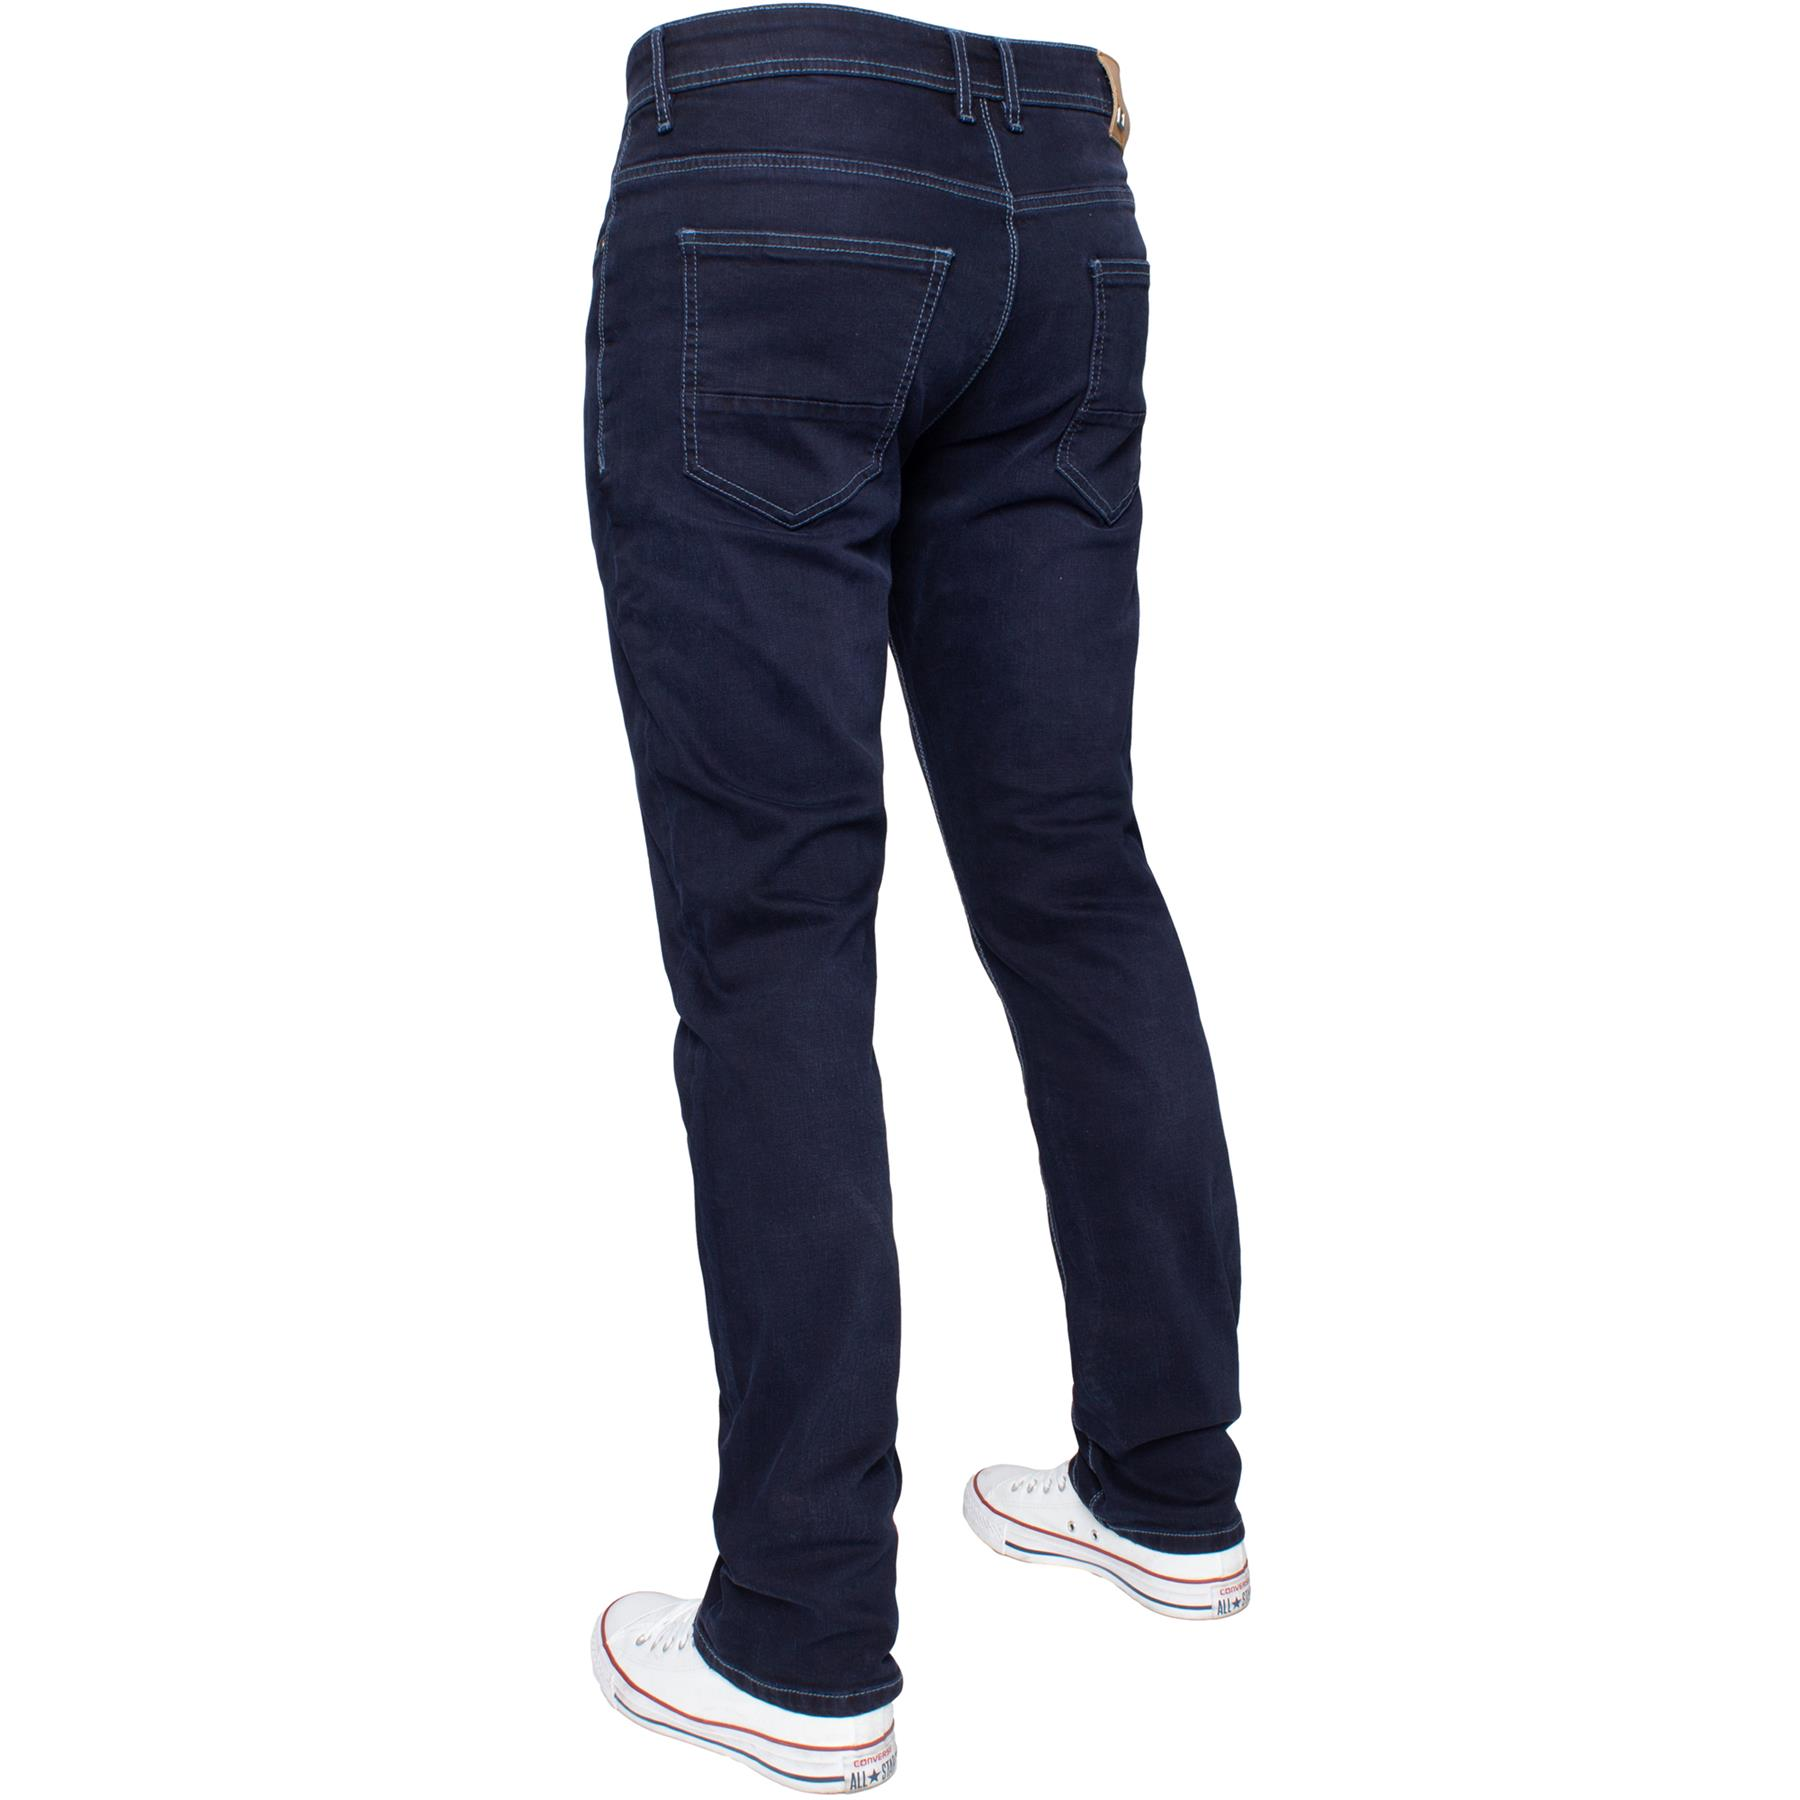 Eto-Designer-Mens-Tapered-Jeans-Slim-Fit-Stretch-Denim-Trouser-Pants-All-Waists thumbnail 25